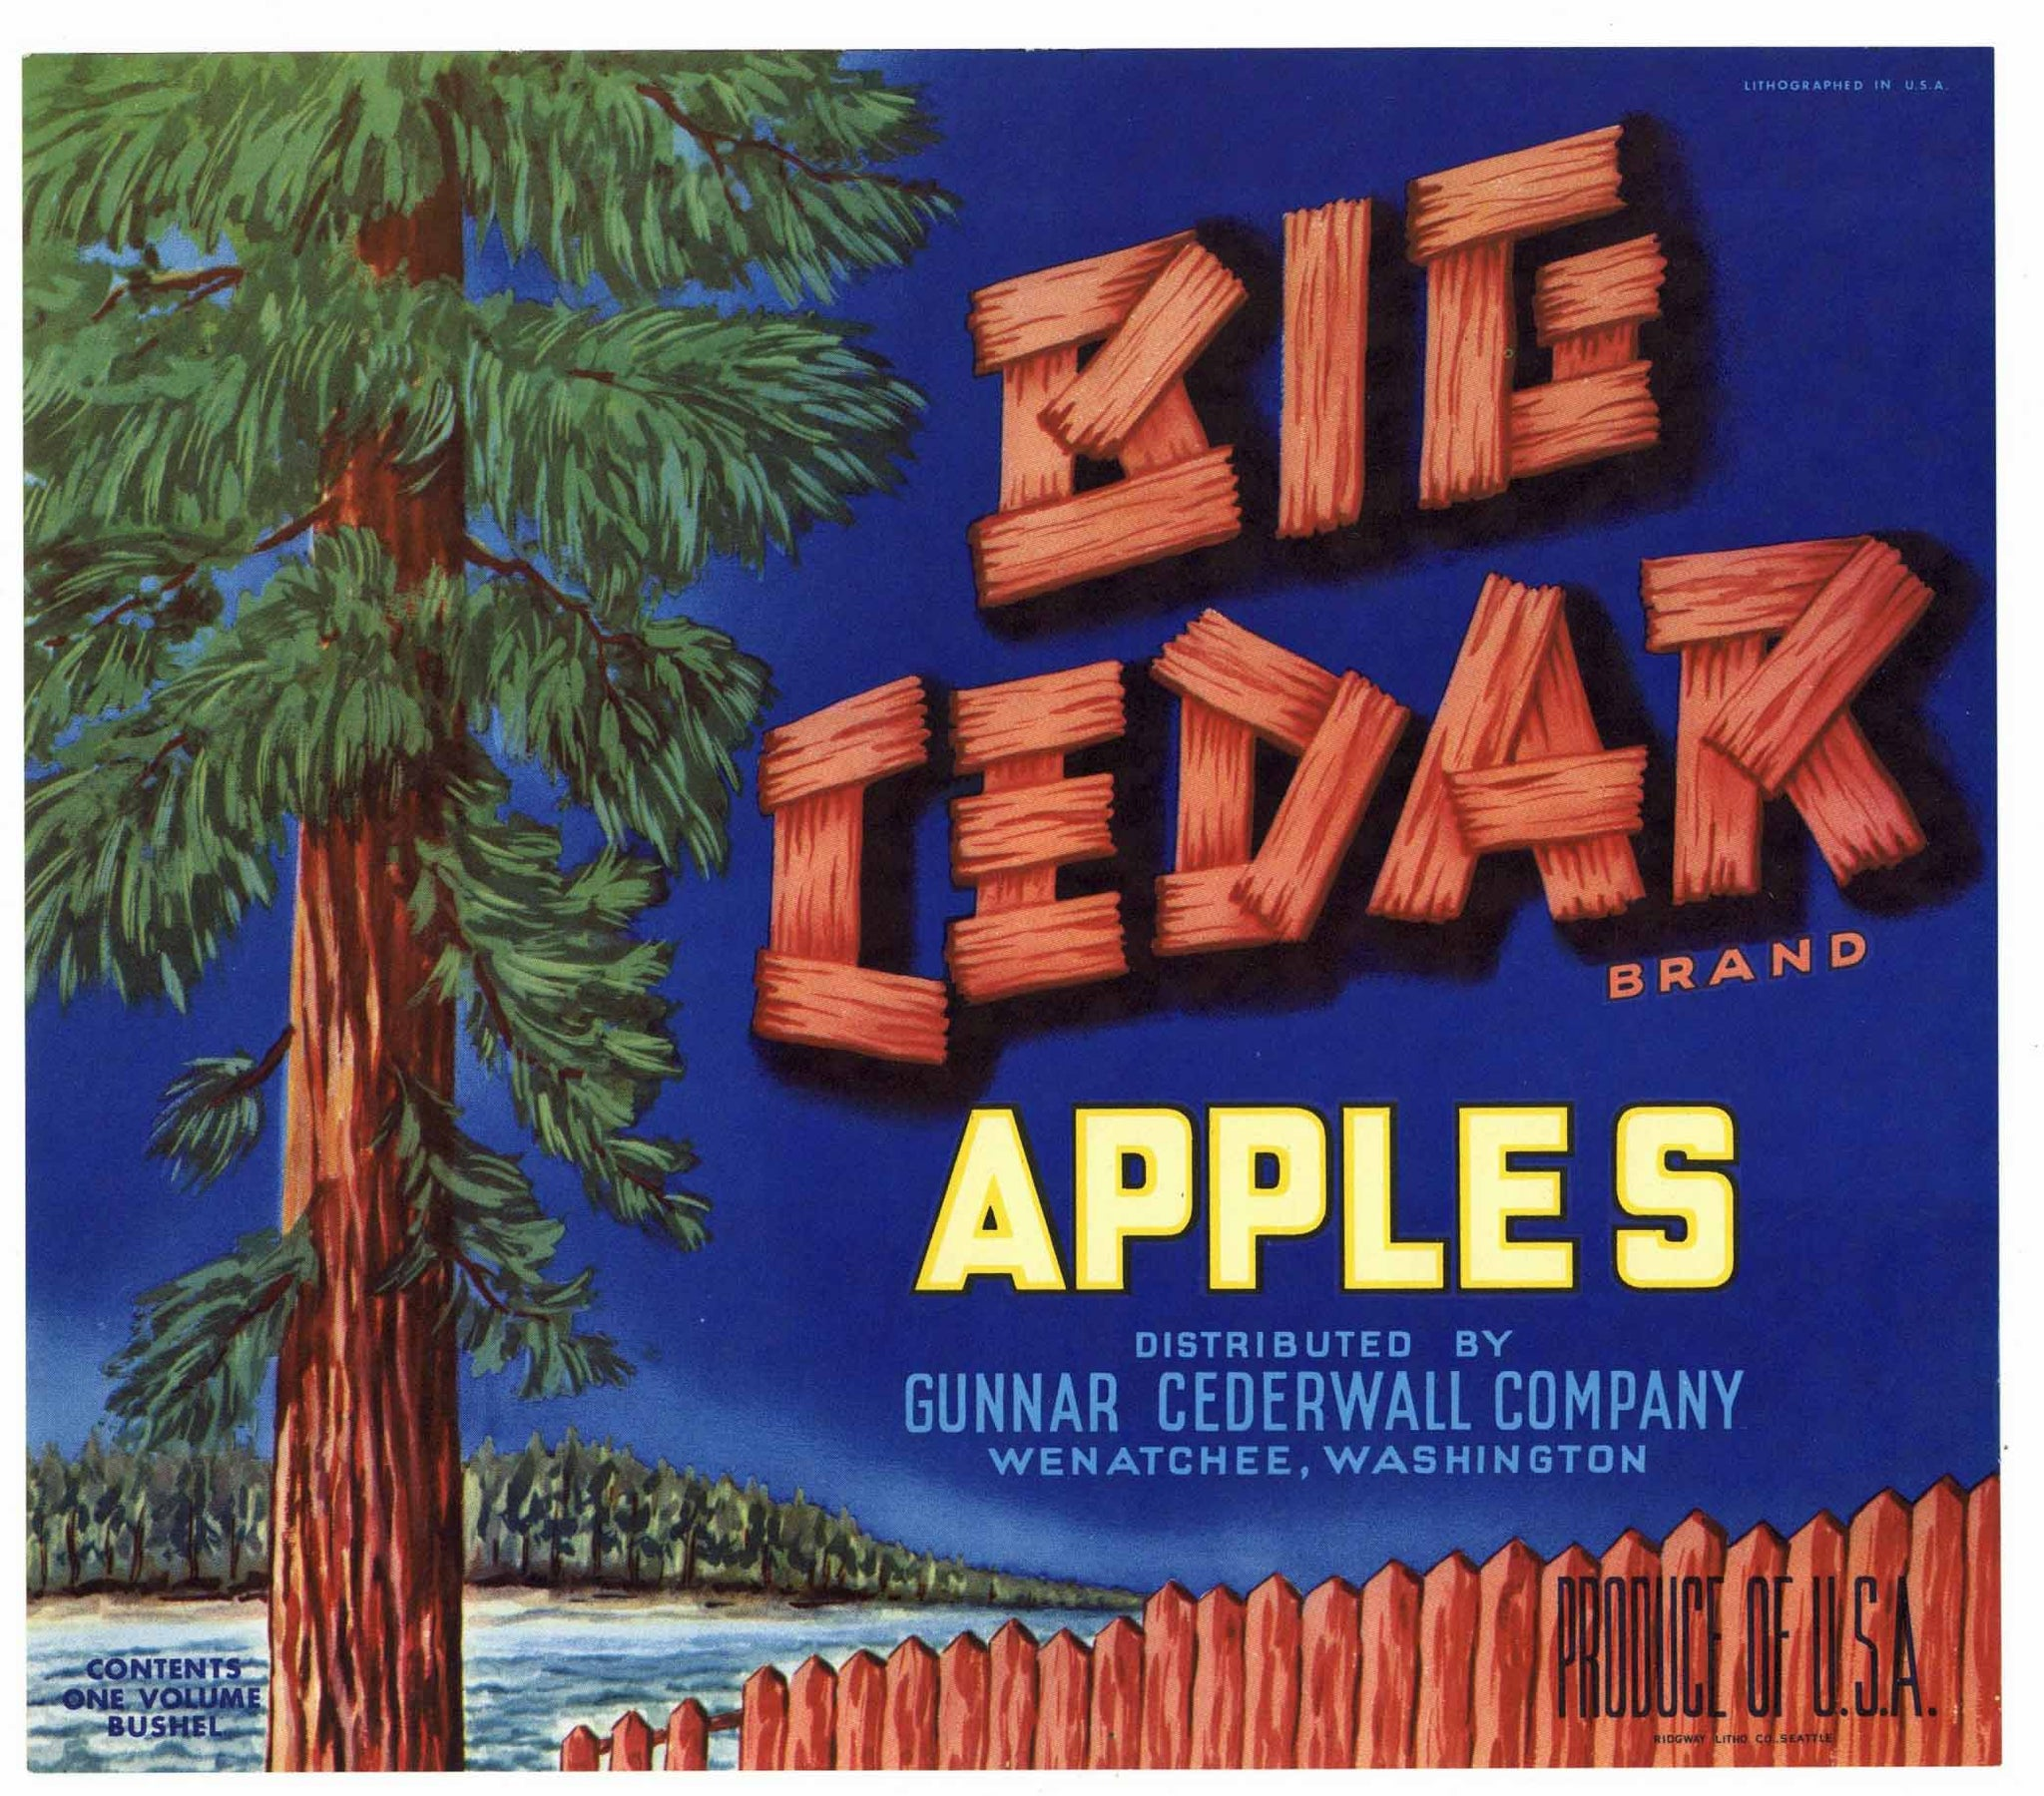 Big Cedar Brand Vintage Wenatchee Washington Apple Crate Label